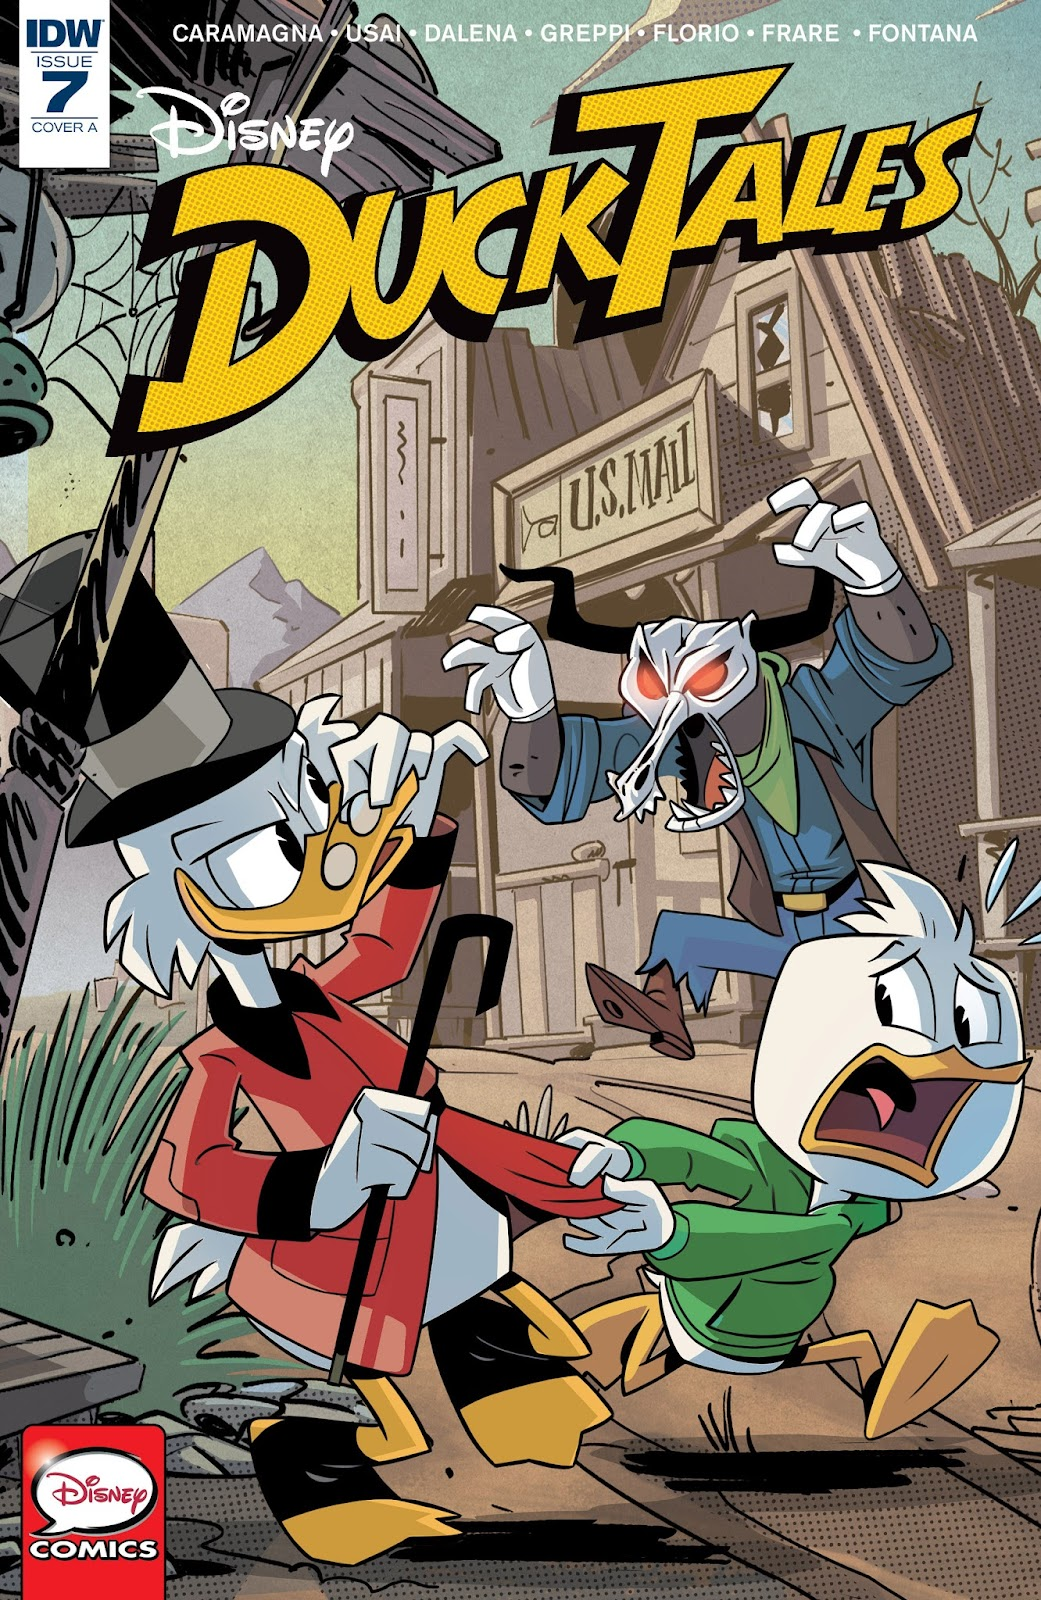 Ducktales (2017) issue 7 - Page 1